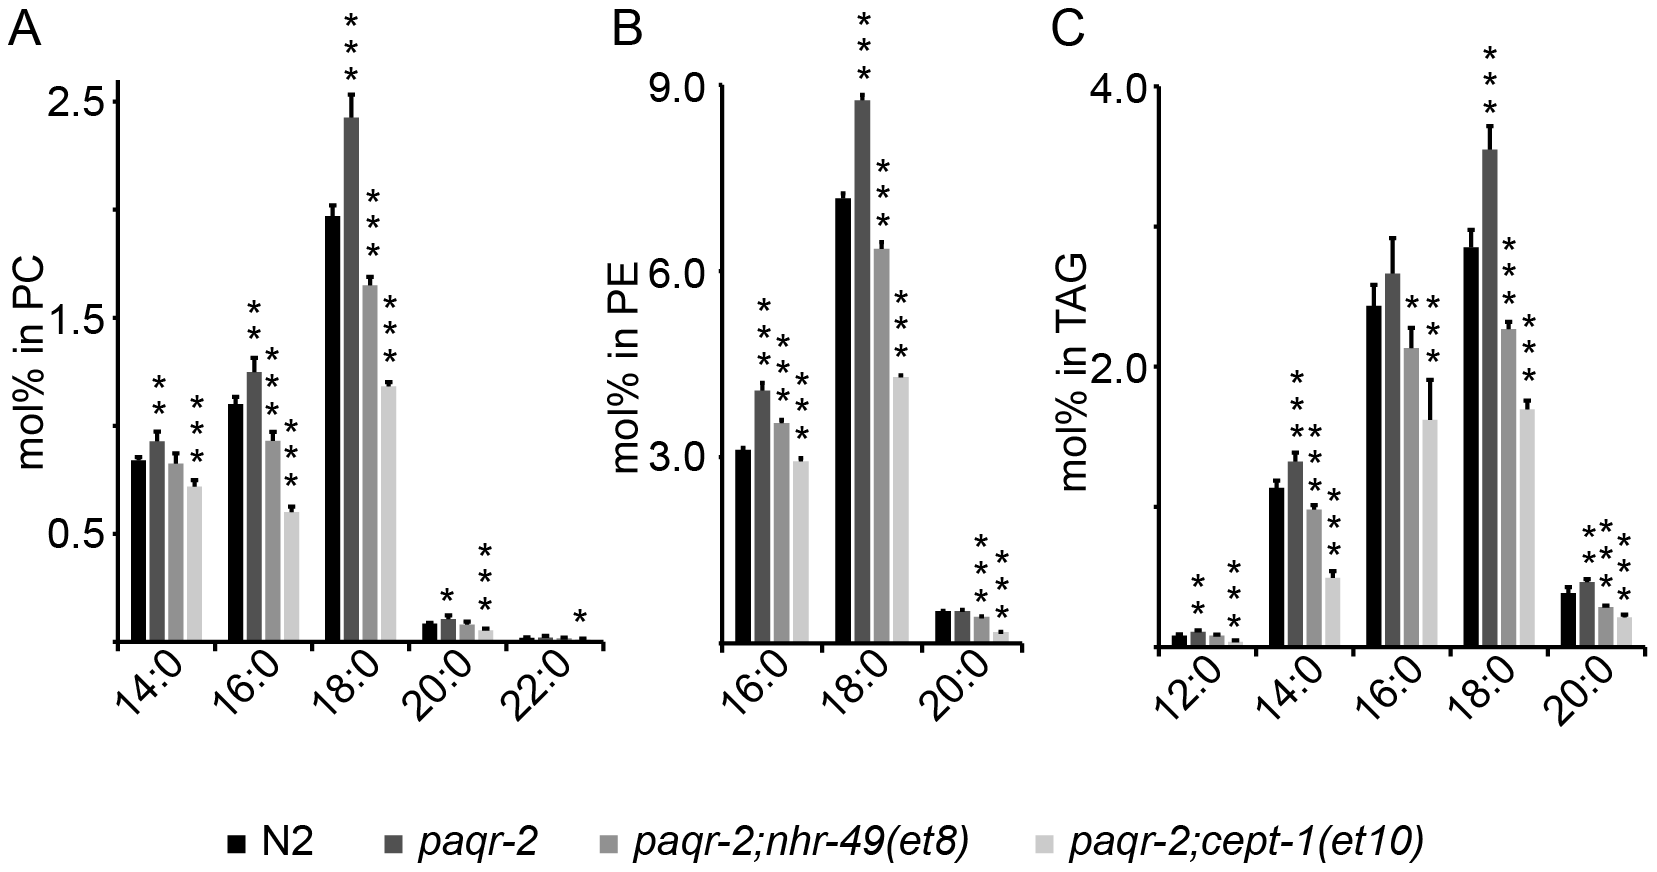 Fatty acid composition defects in the <i>paqr-2</i> mutant.